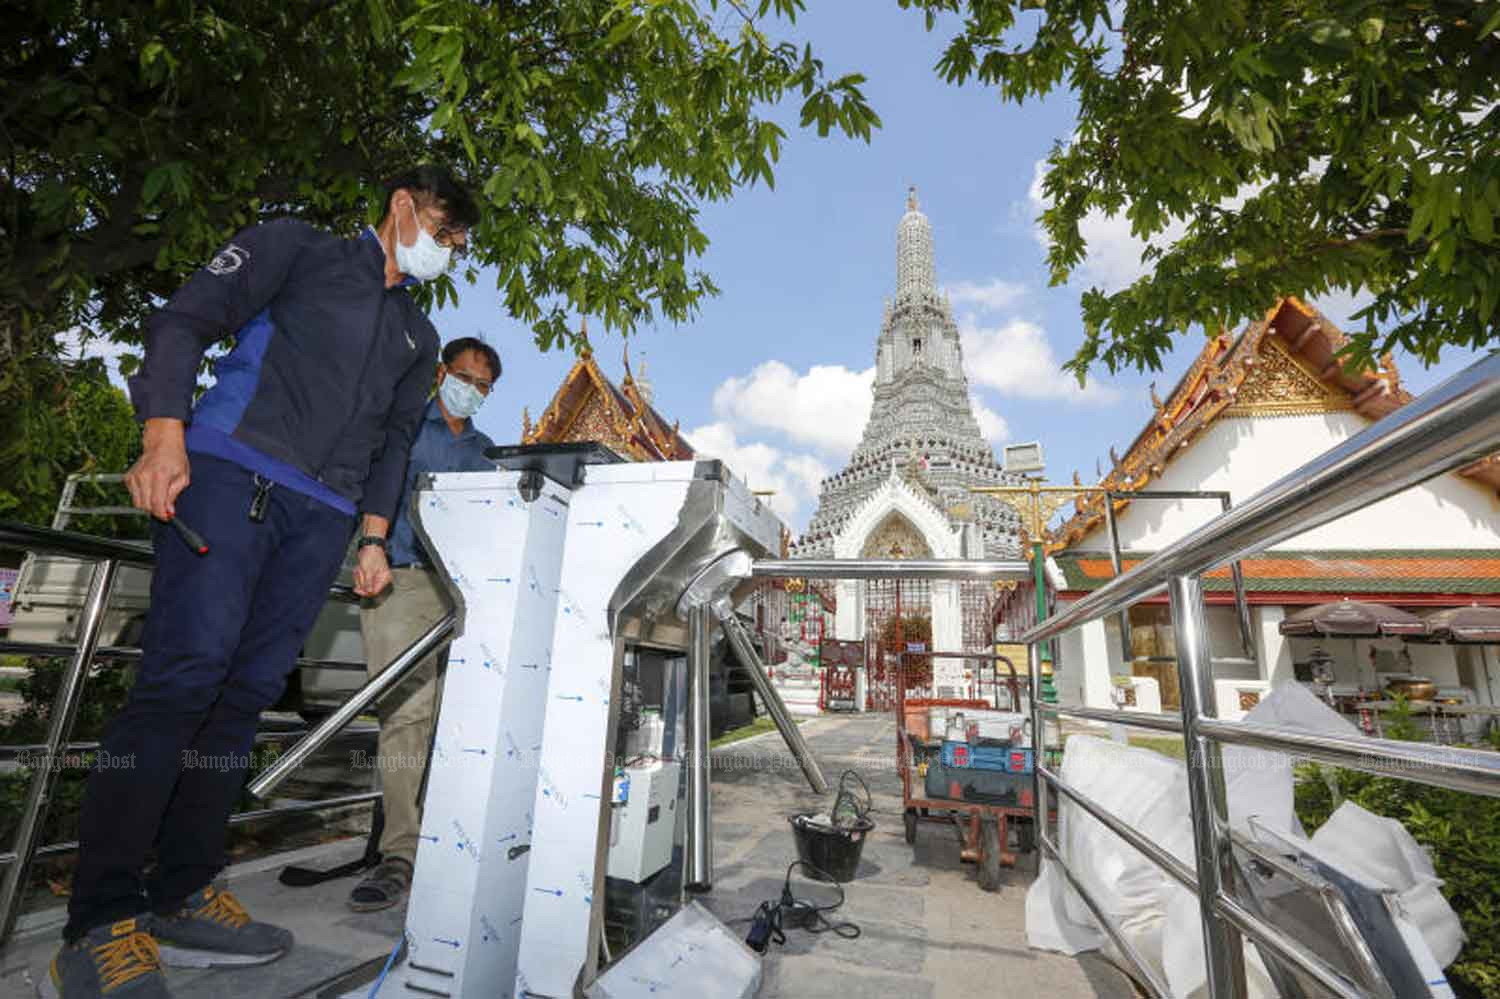 Handymen work on a newly installed turnstile at the entrance to Wat Arun Ratchawararam (Temple of Dawn) in Bangkok ahead of a further easing of the lockdown for business on Sunday. (Photo by Pattarapong Chatpattarasill)